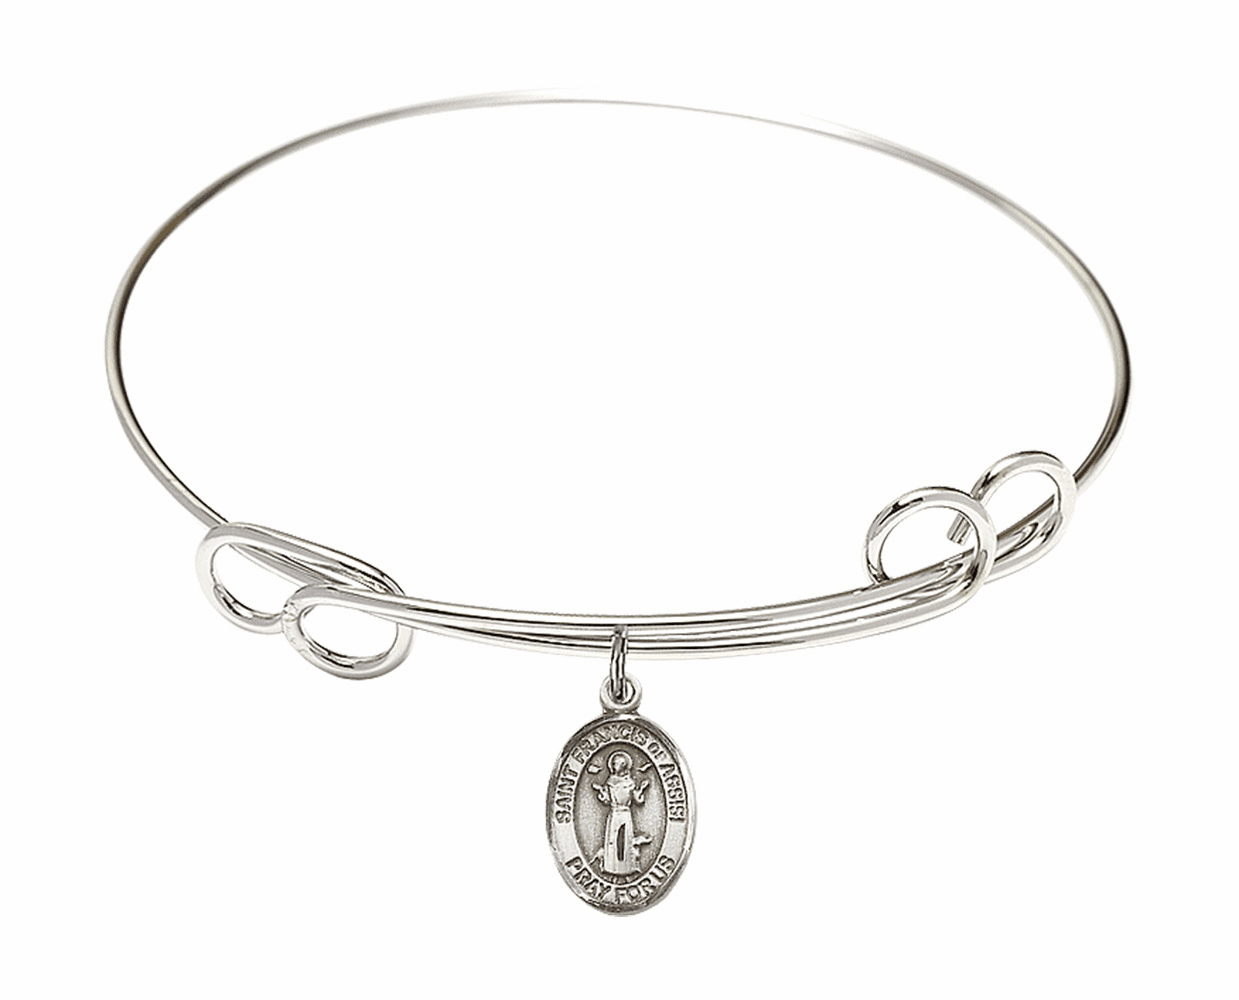 Round Loop St Francis of Assisi Bangle Charm Bracelet by Bliss